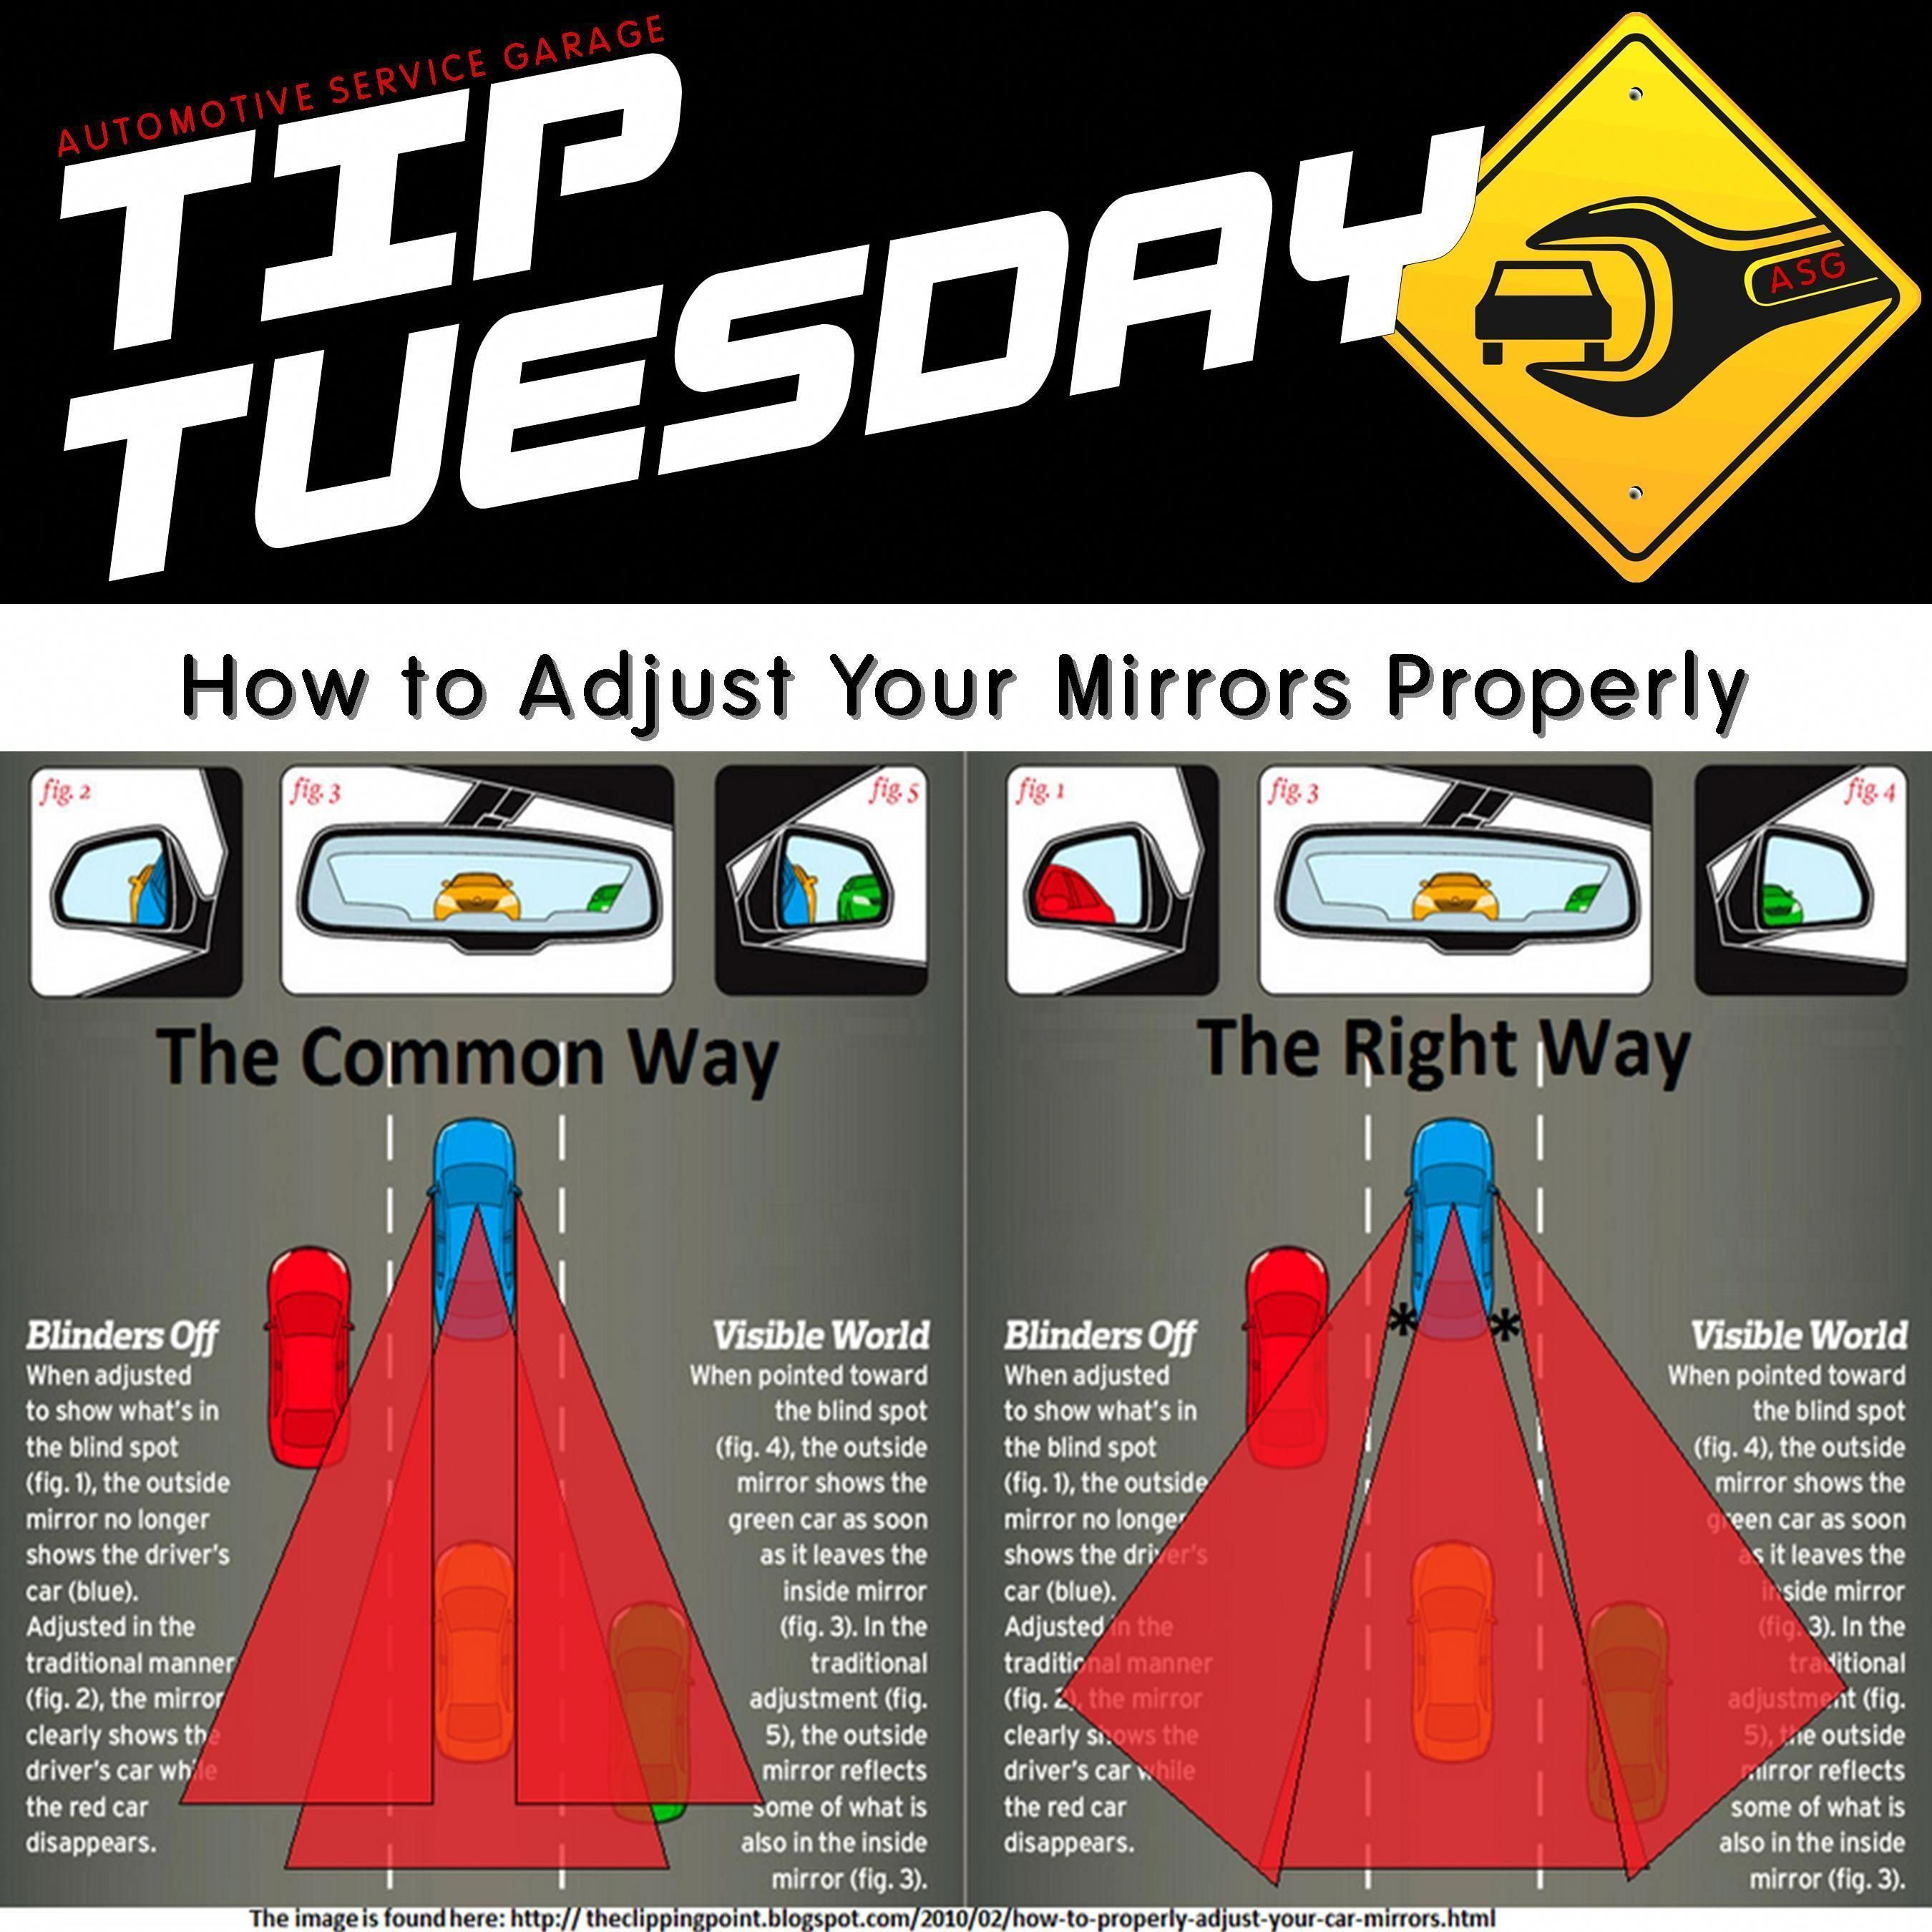 Car Care Tip How To Set Mirrors To Eliminate Blind Spots It S Likely Your Side View Mirrors Are Too Narrowly Drawn In To Car Care Tips Car Care Auto Repair